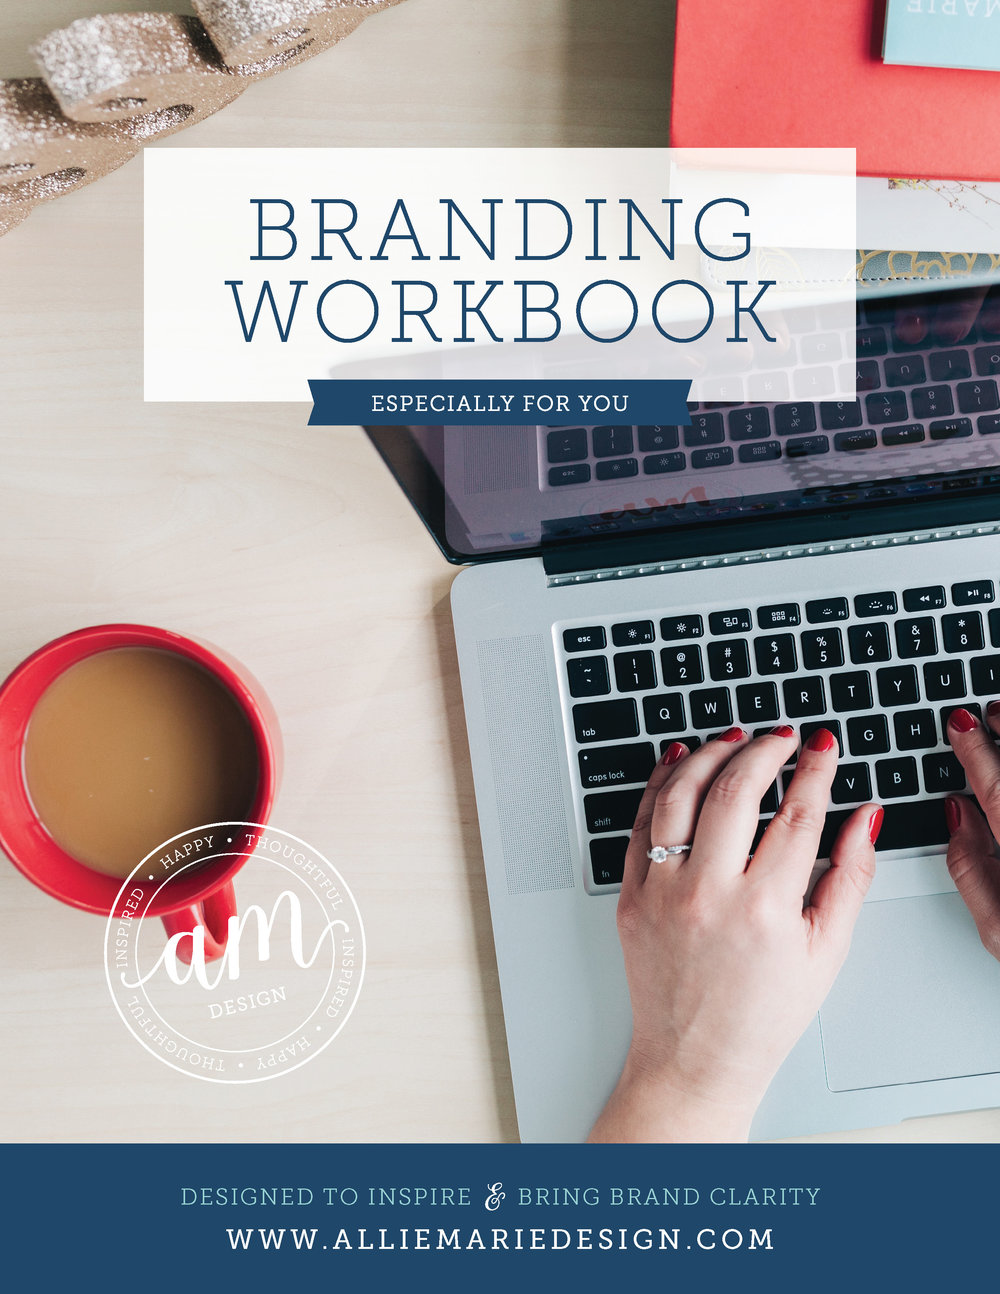 AllieMarie Design Branding Workbook Free Download  |  Visual Branding + Graphic Designer in Minneapolis, MN